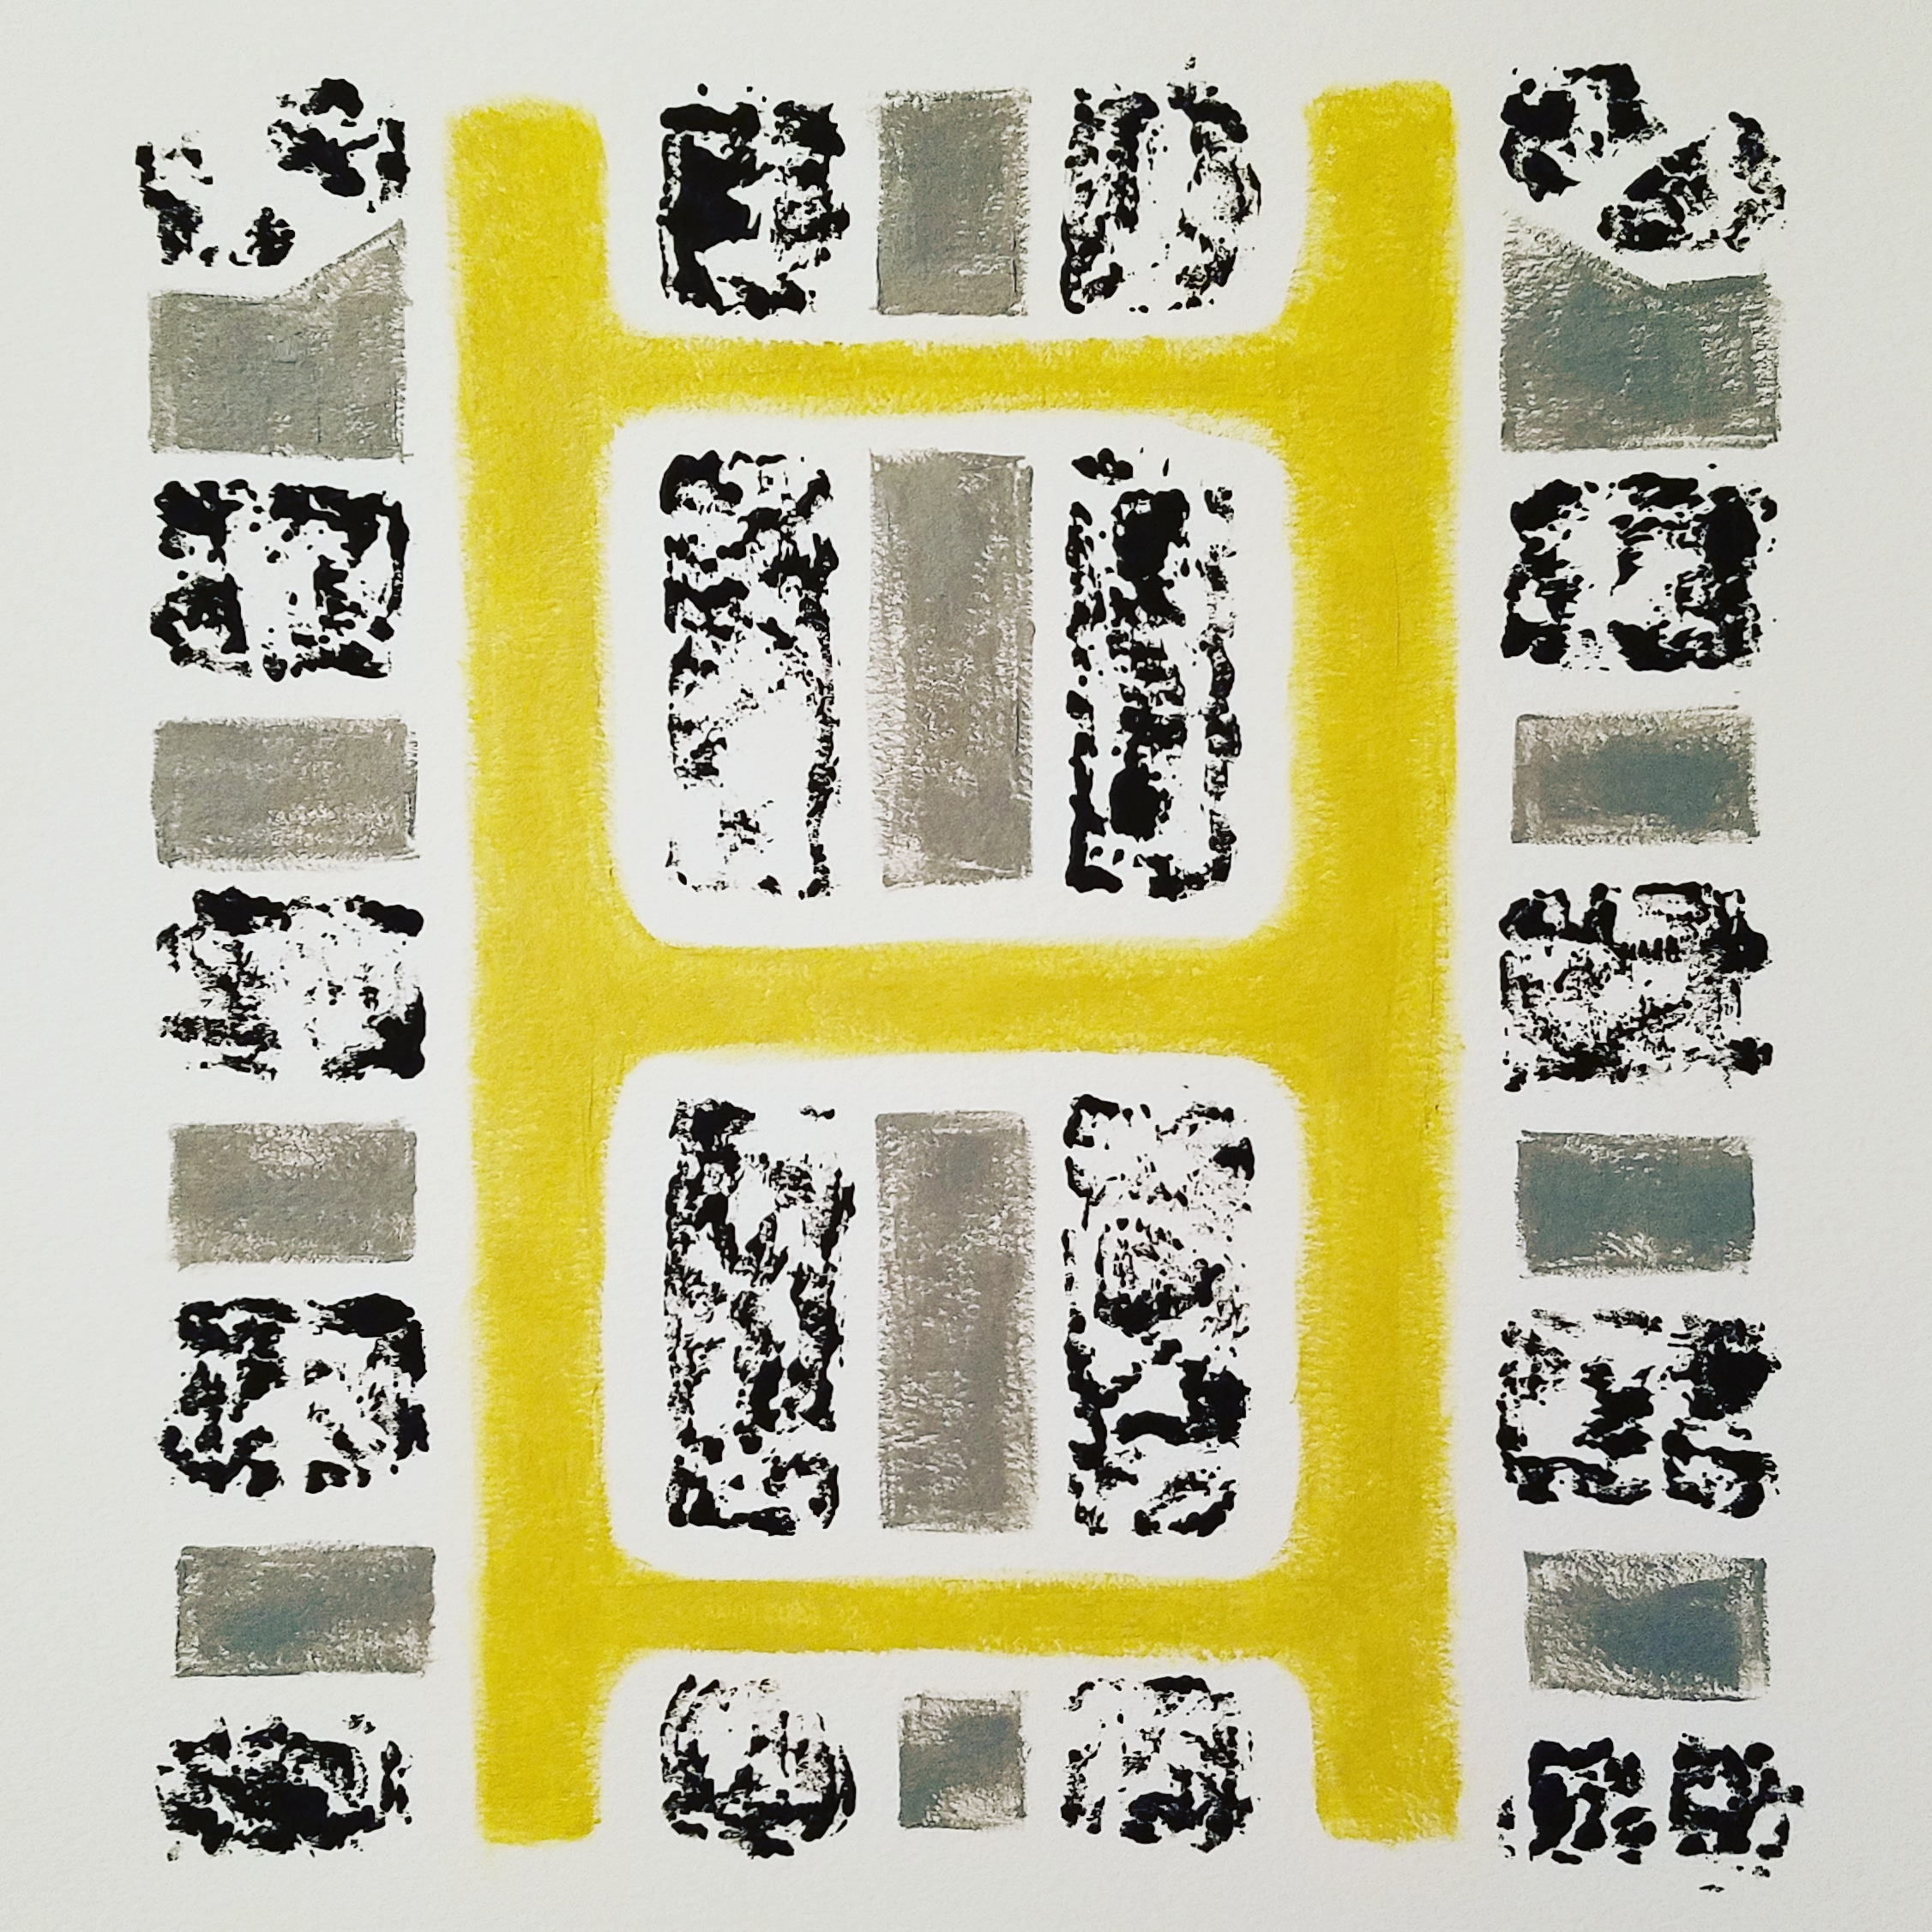 Untitled, oil and printing ink on paper